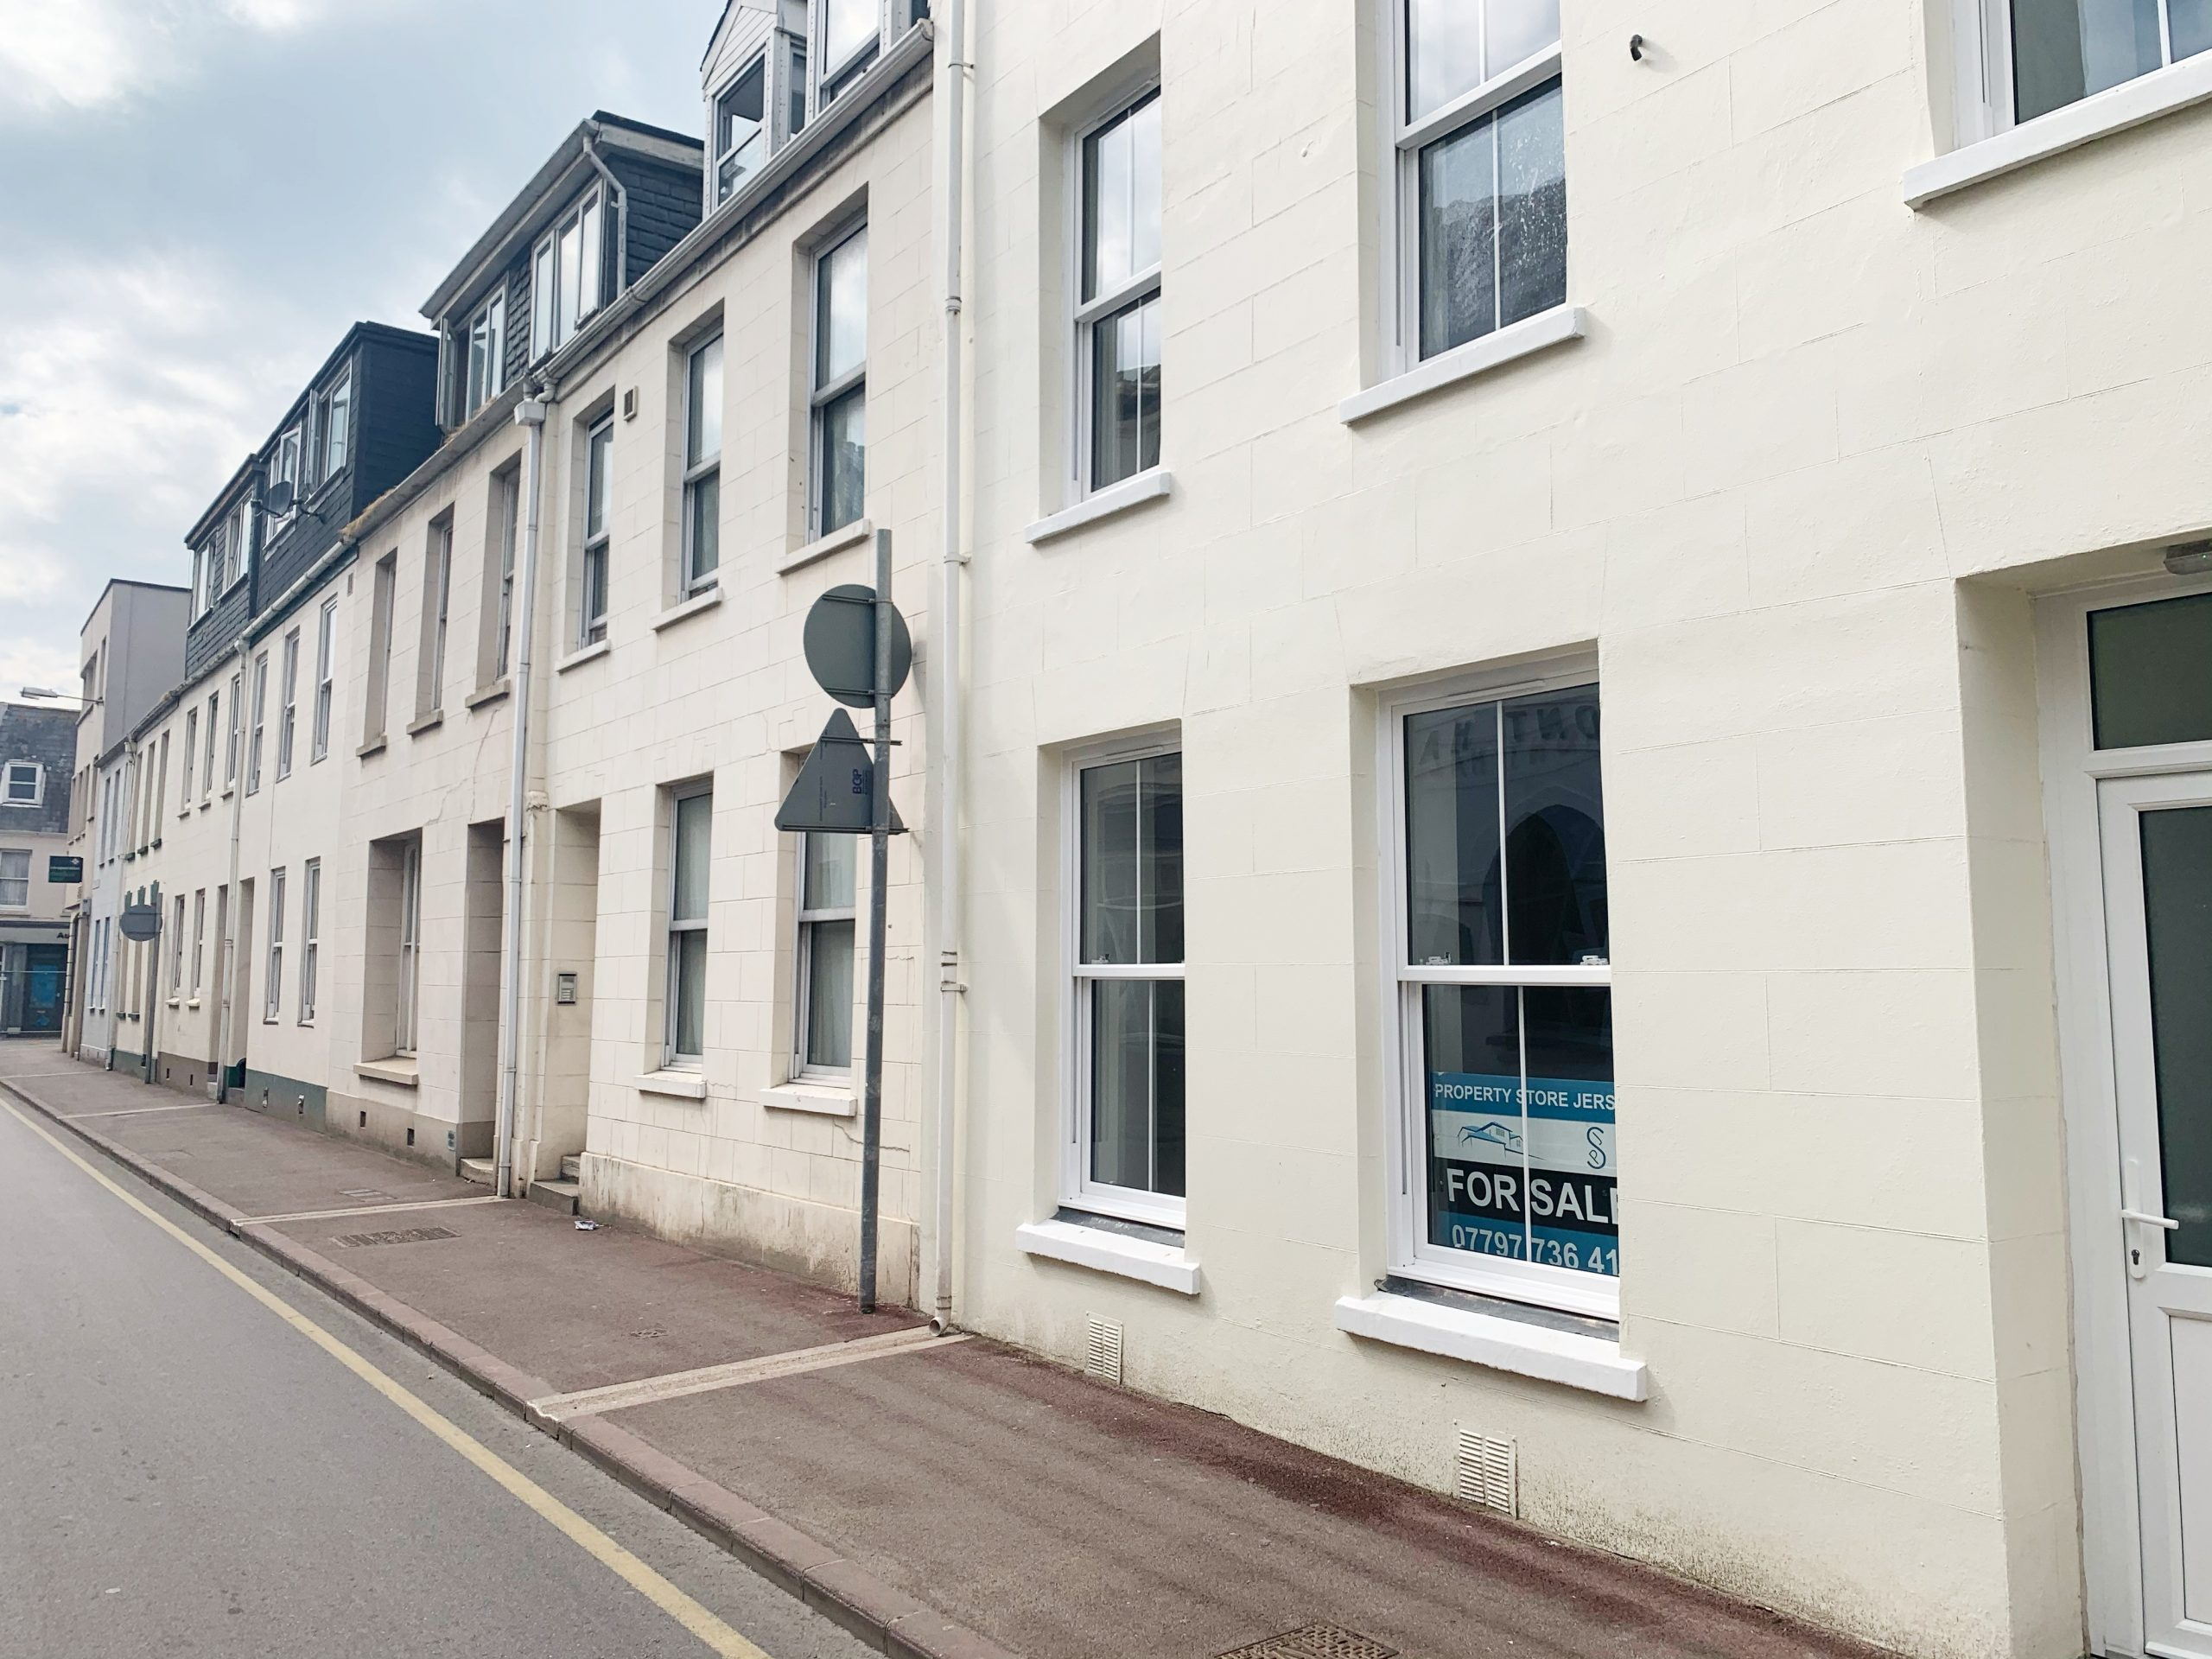 Large First Rate Fully Renovated Ground Floor Apartment, on Belmont Road